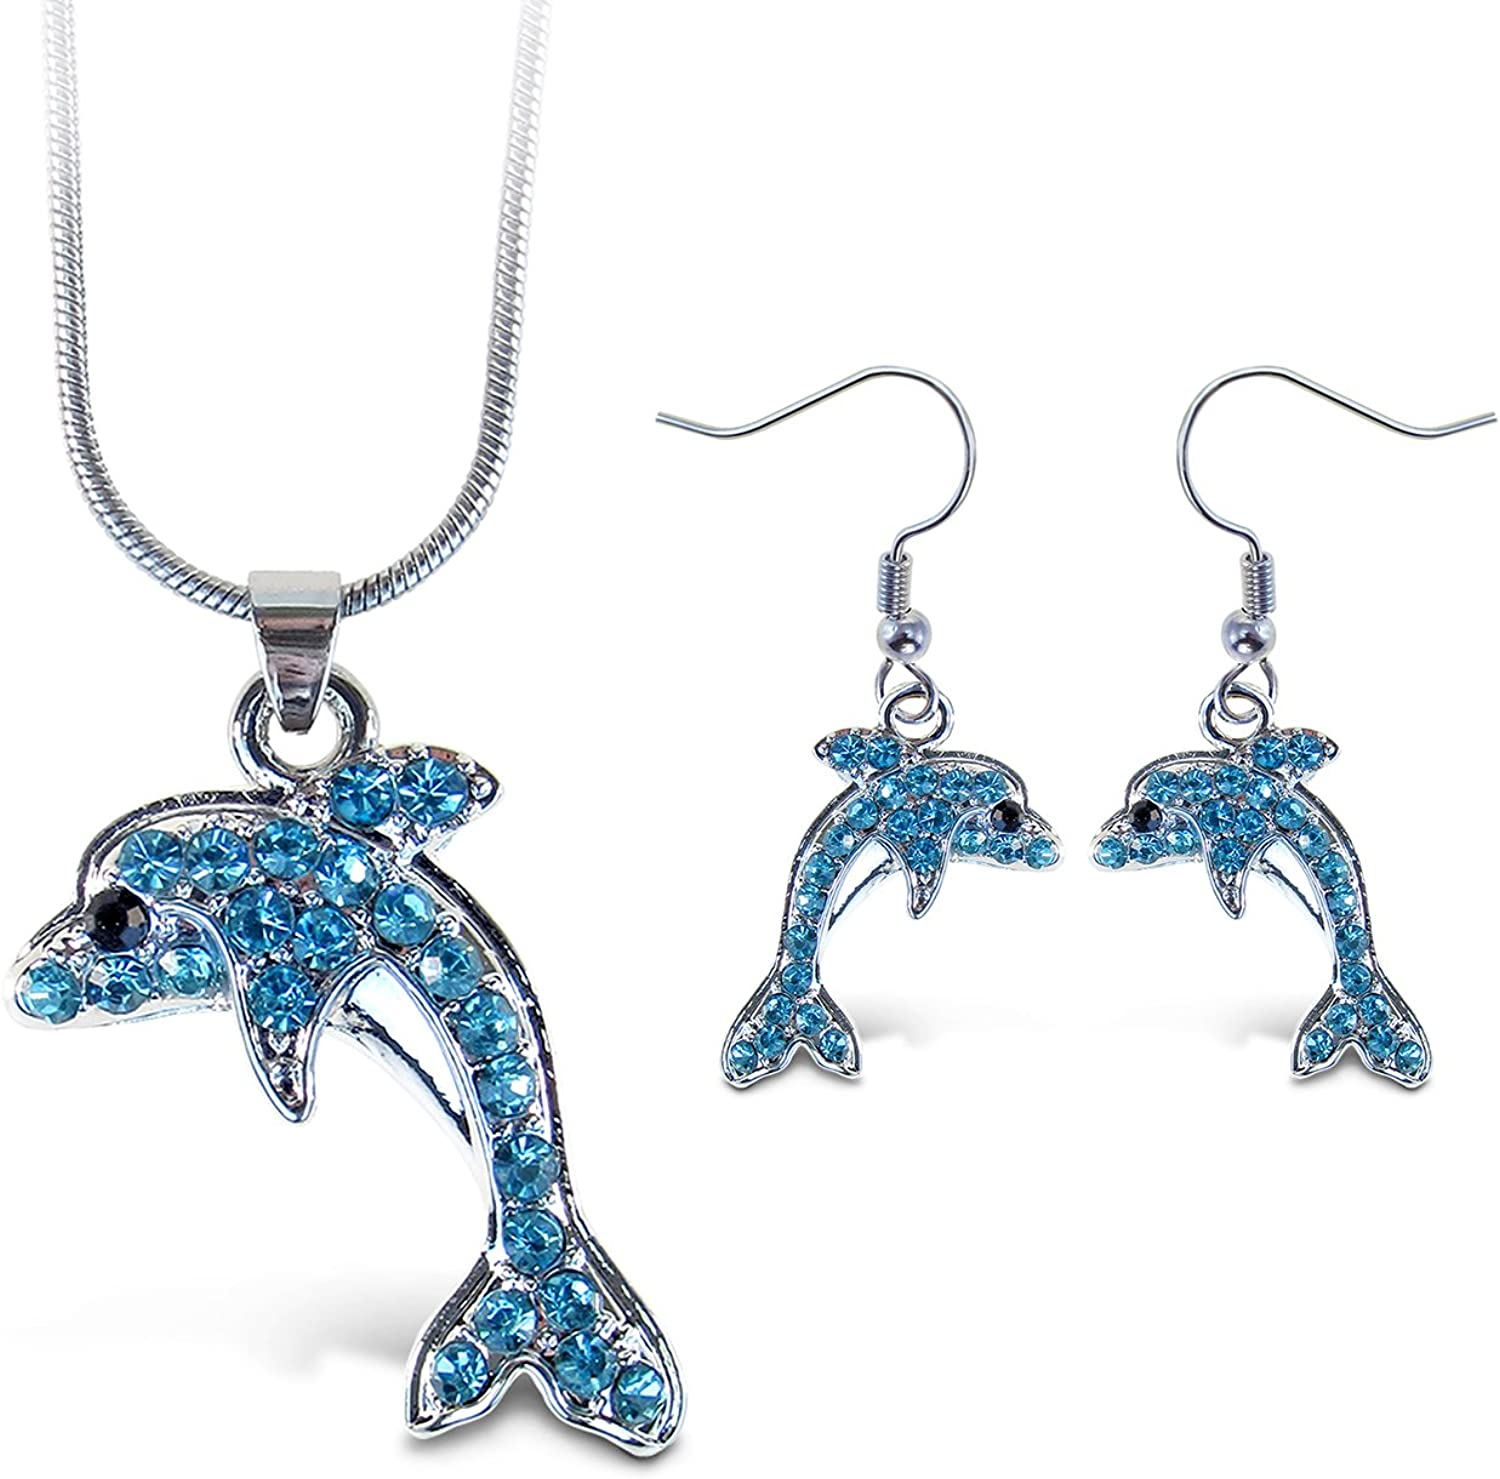 Puzzled Sparkling Dolphin Necklace and Earrings Set Charming Necklace and Earring Set - Ocean Sea Life Theme - Aqua Jewelry Always Unique Gift - Item #K6301-6351